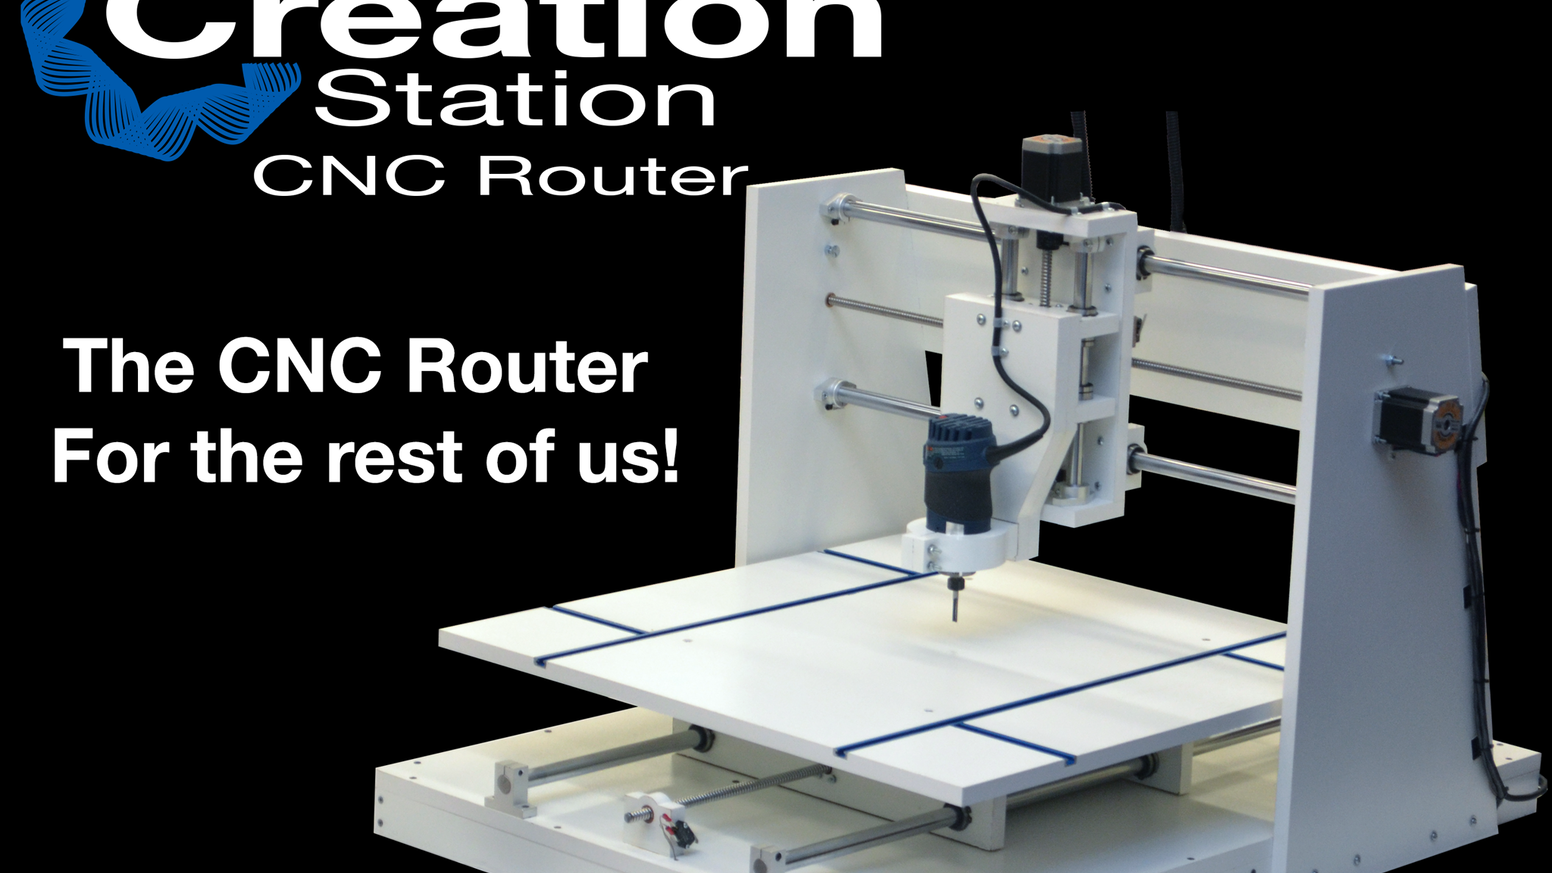 The Creation Station Open Source Cnc Router By Innovation Squared